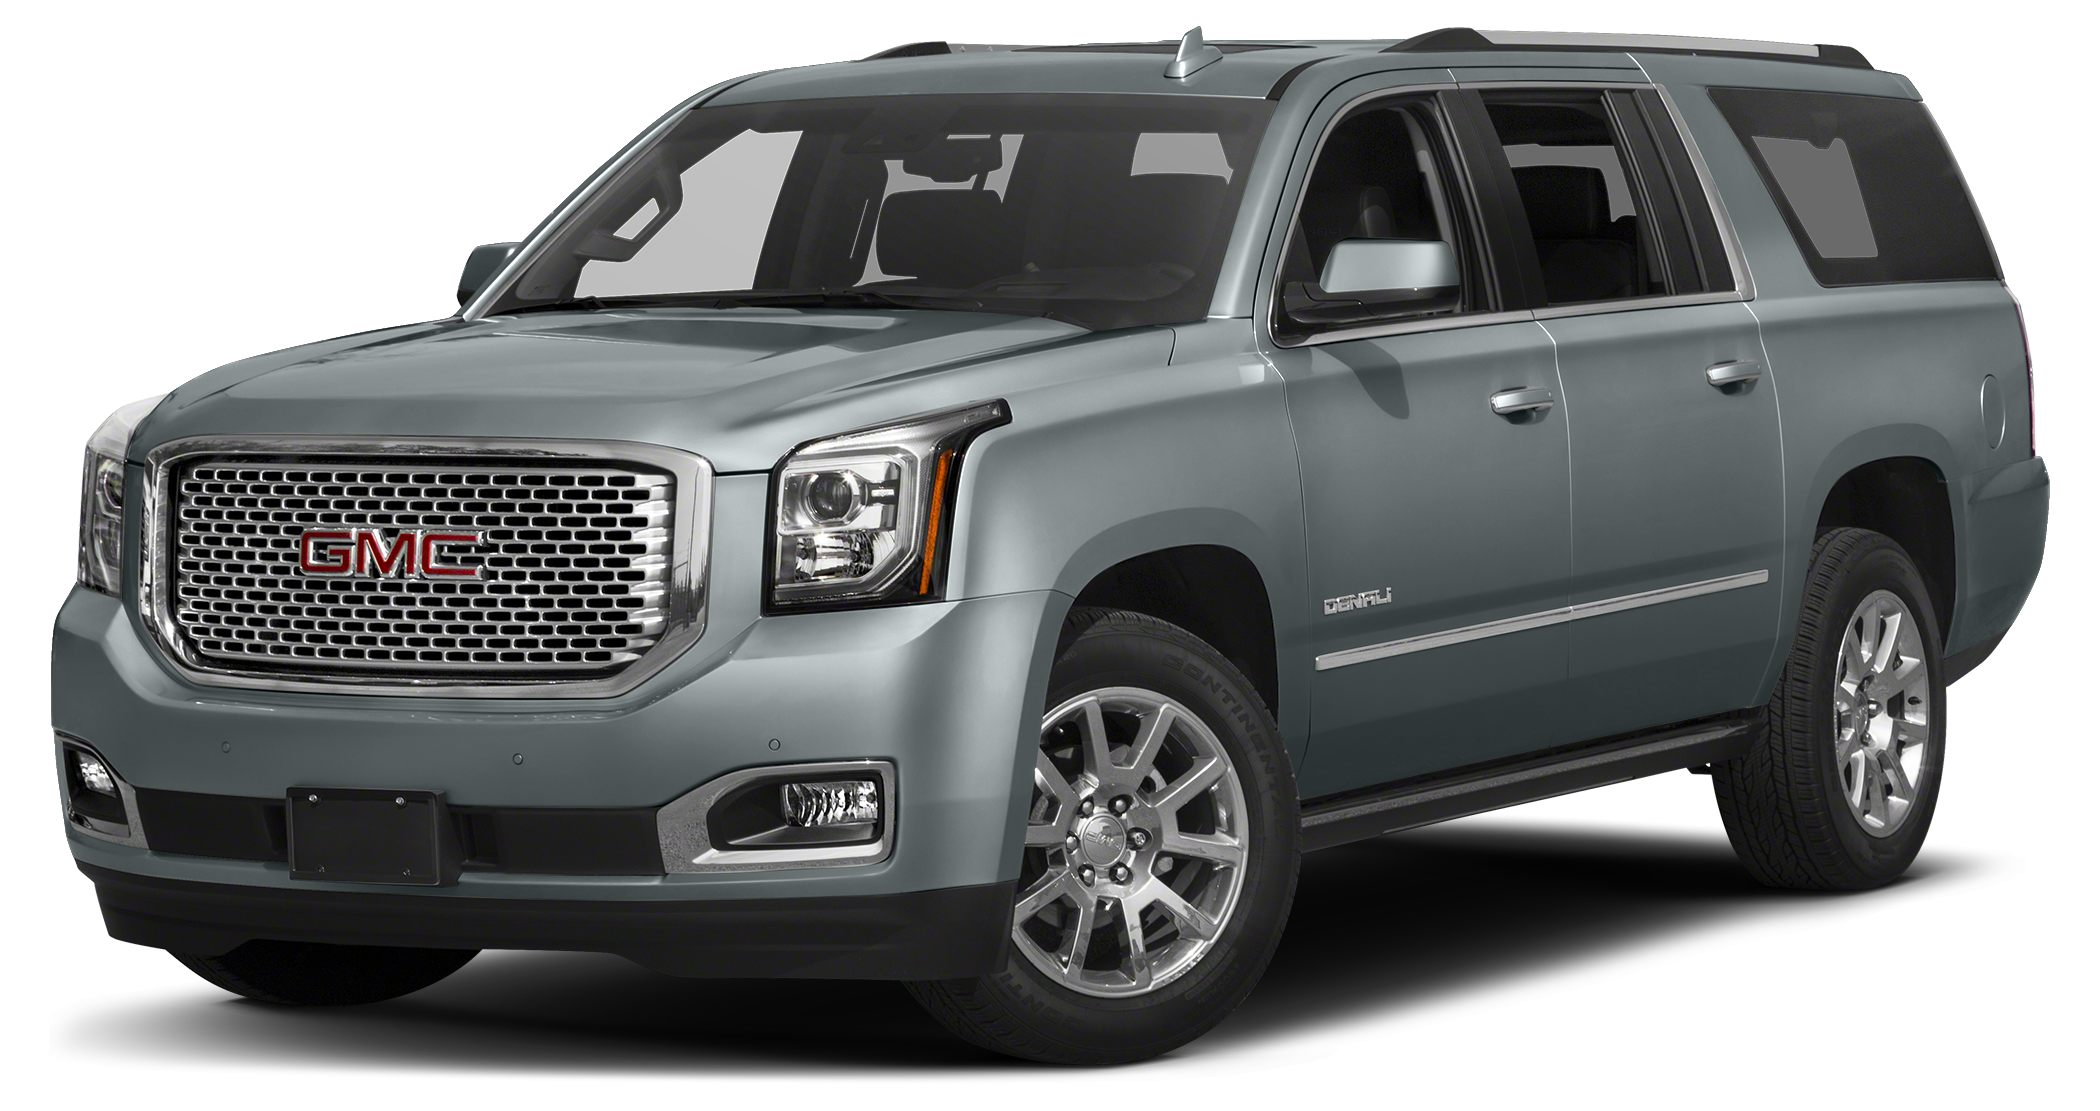 2018 GMC Yukon XL Denali Boasts 21 Highway MPG and 14 City MPG Miles 4Color Satin Steel Metall